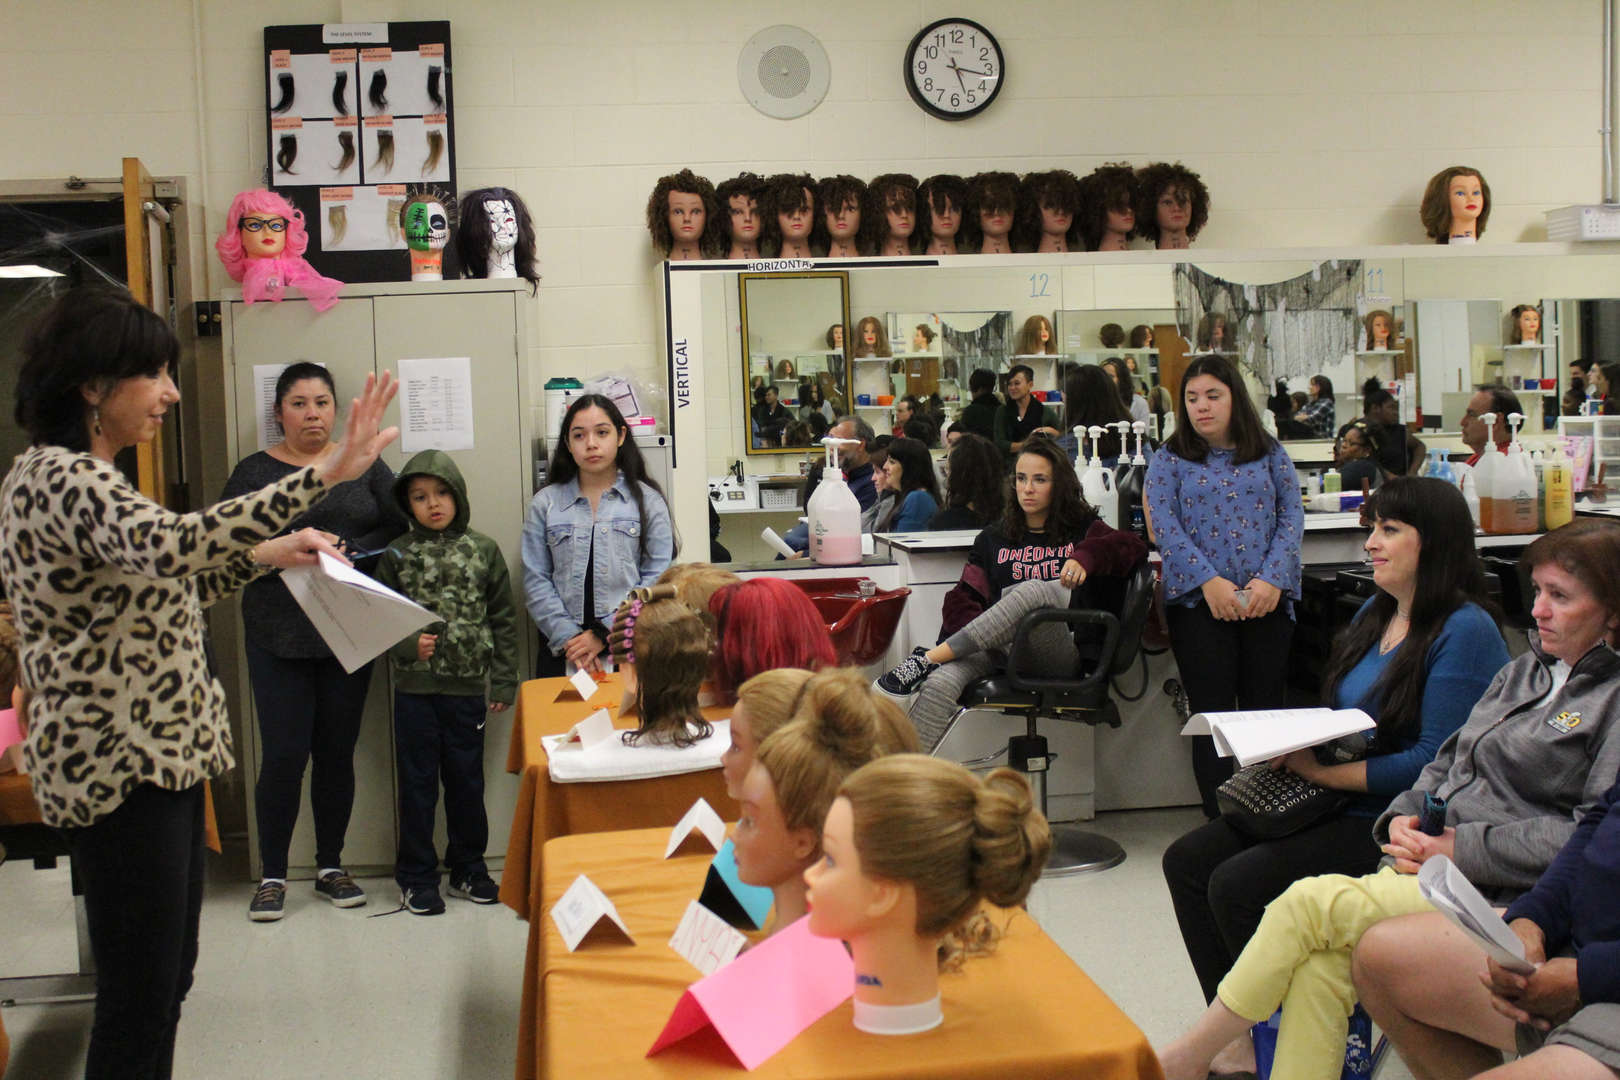 Cosmetology teacher speaks to a group of parents who are seated at desks